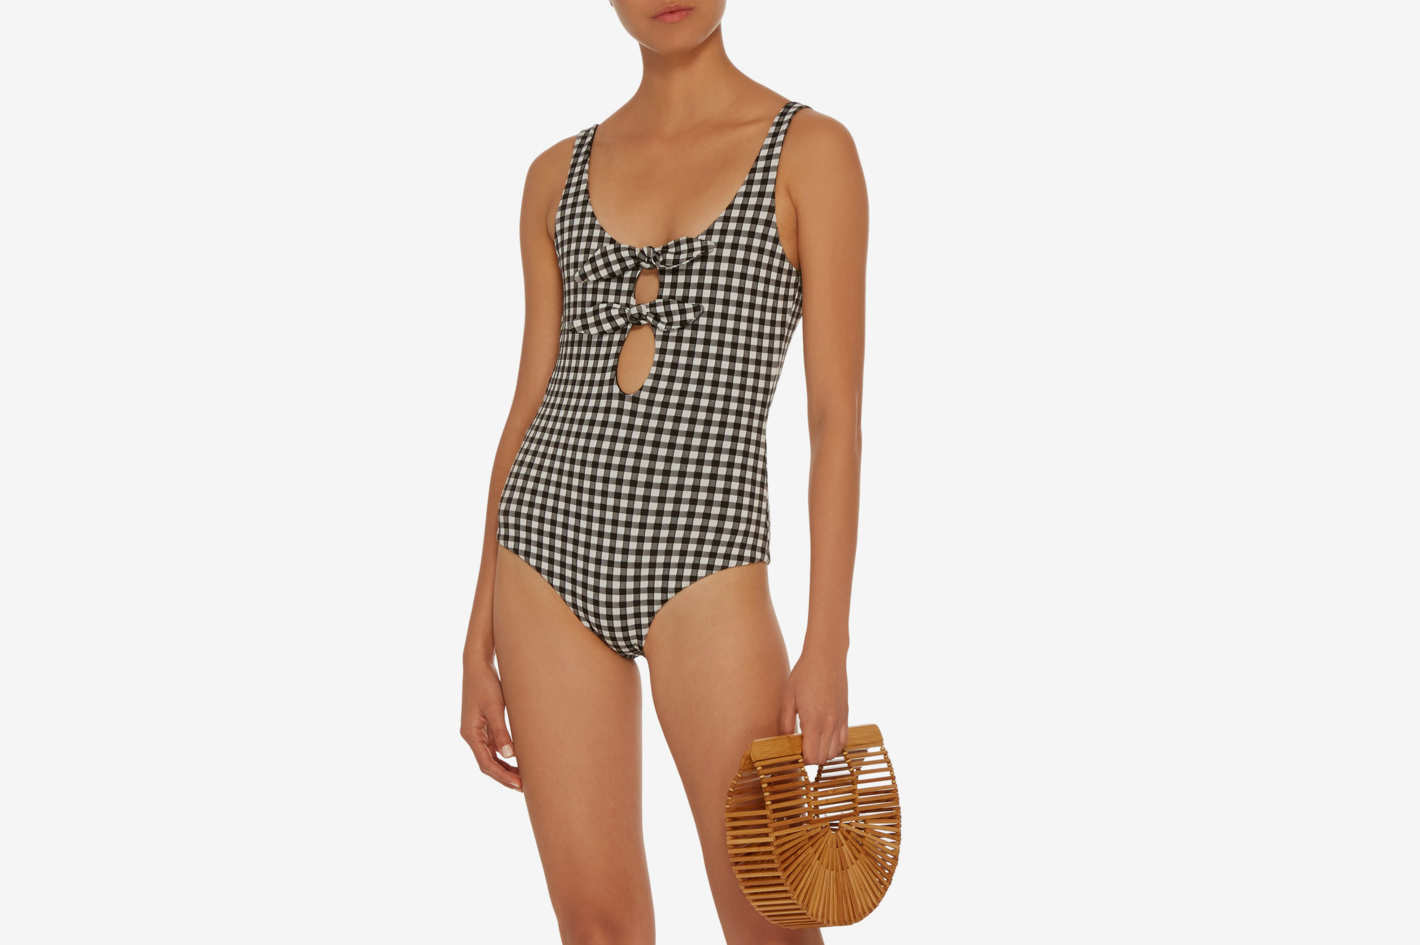 Mara Hoffman Maven Gingham One Piece Swimsuit